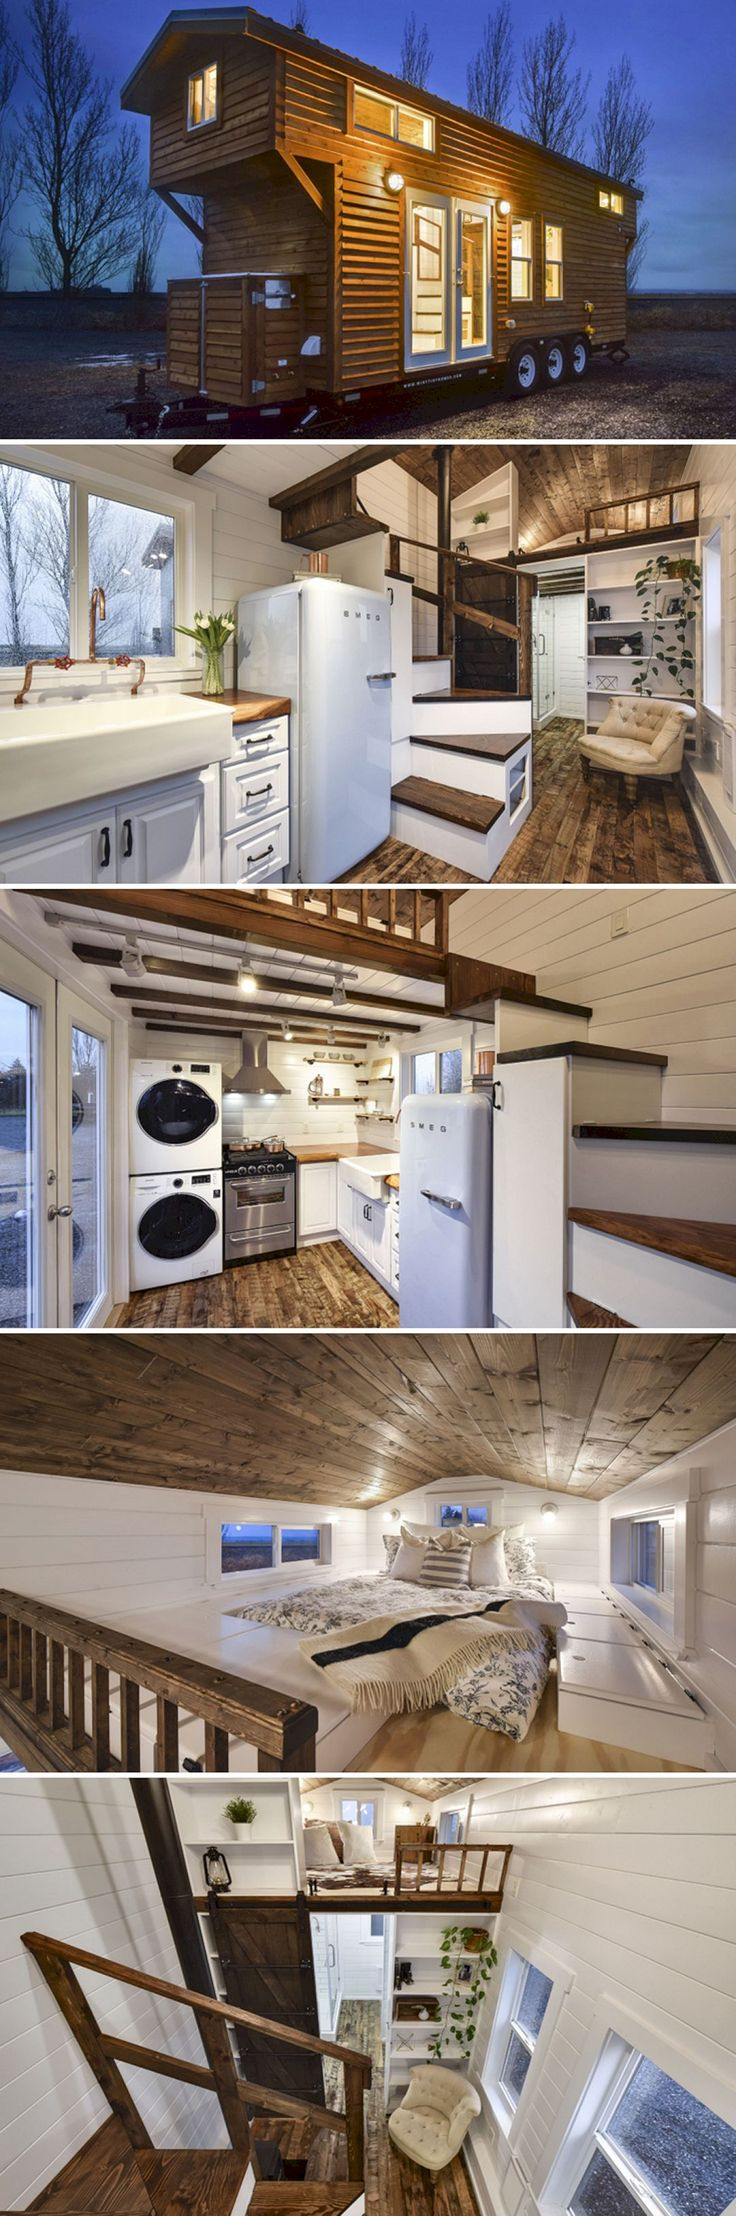 70 marvelous tiny houses design that maximize style and for Wohncontainer holz